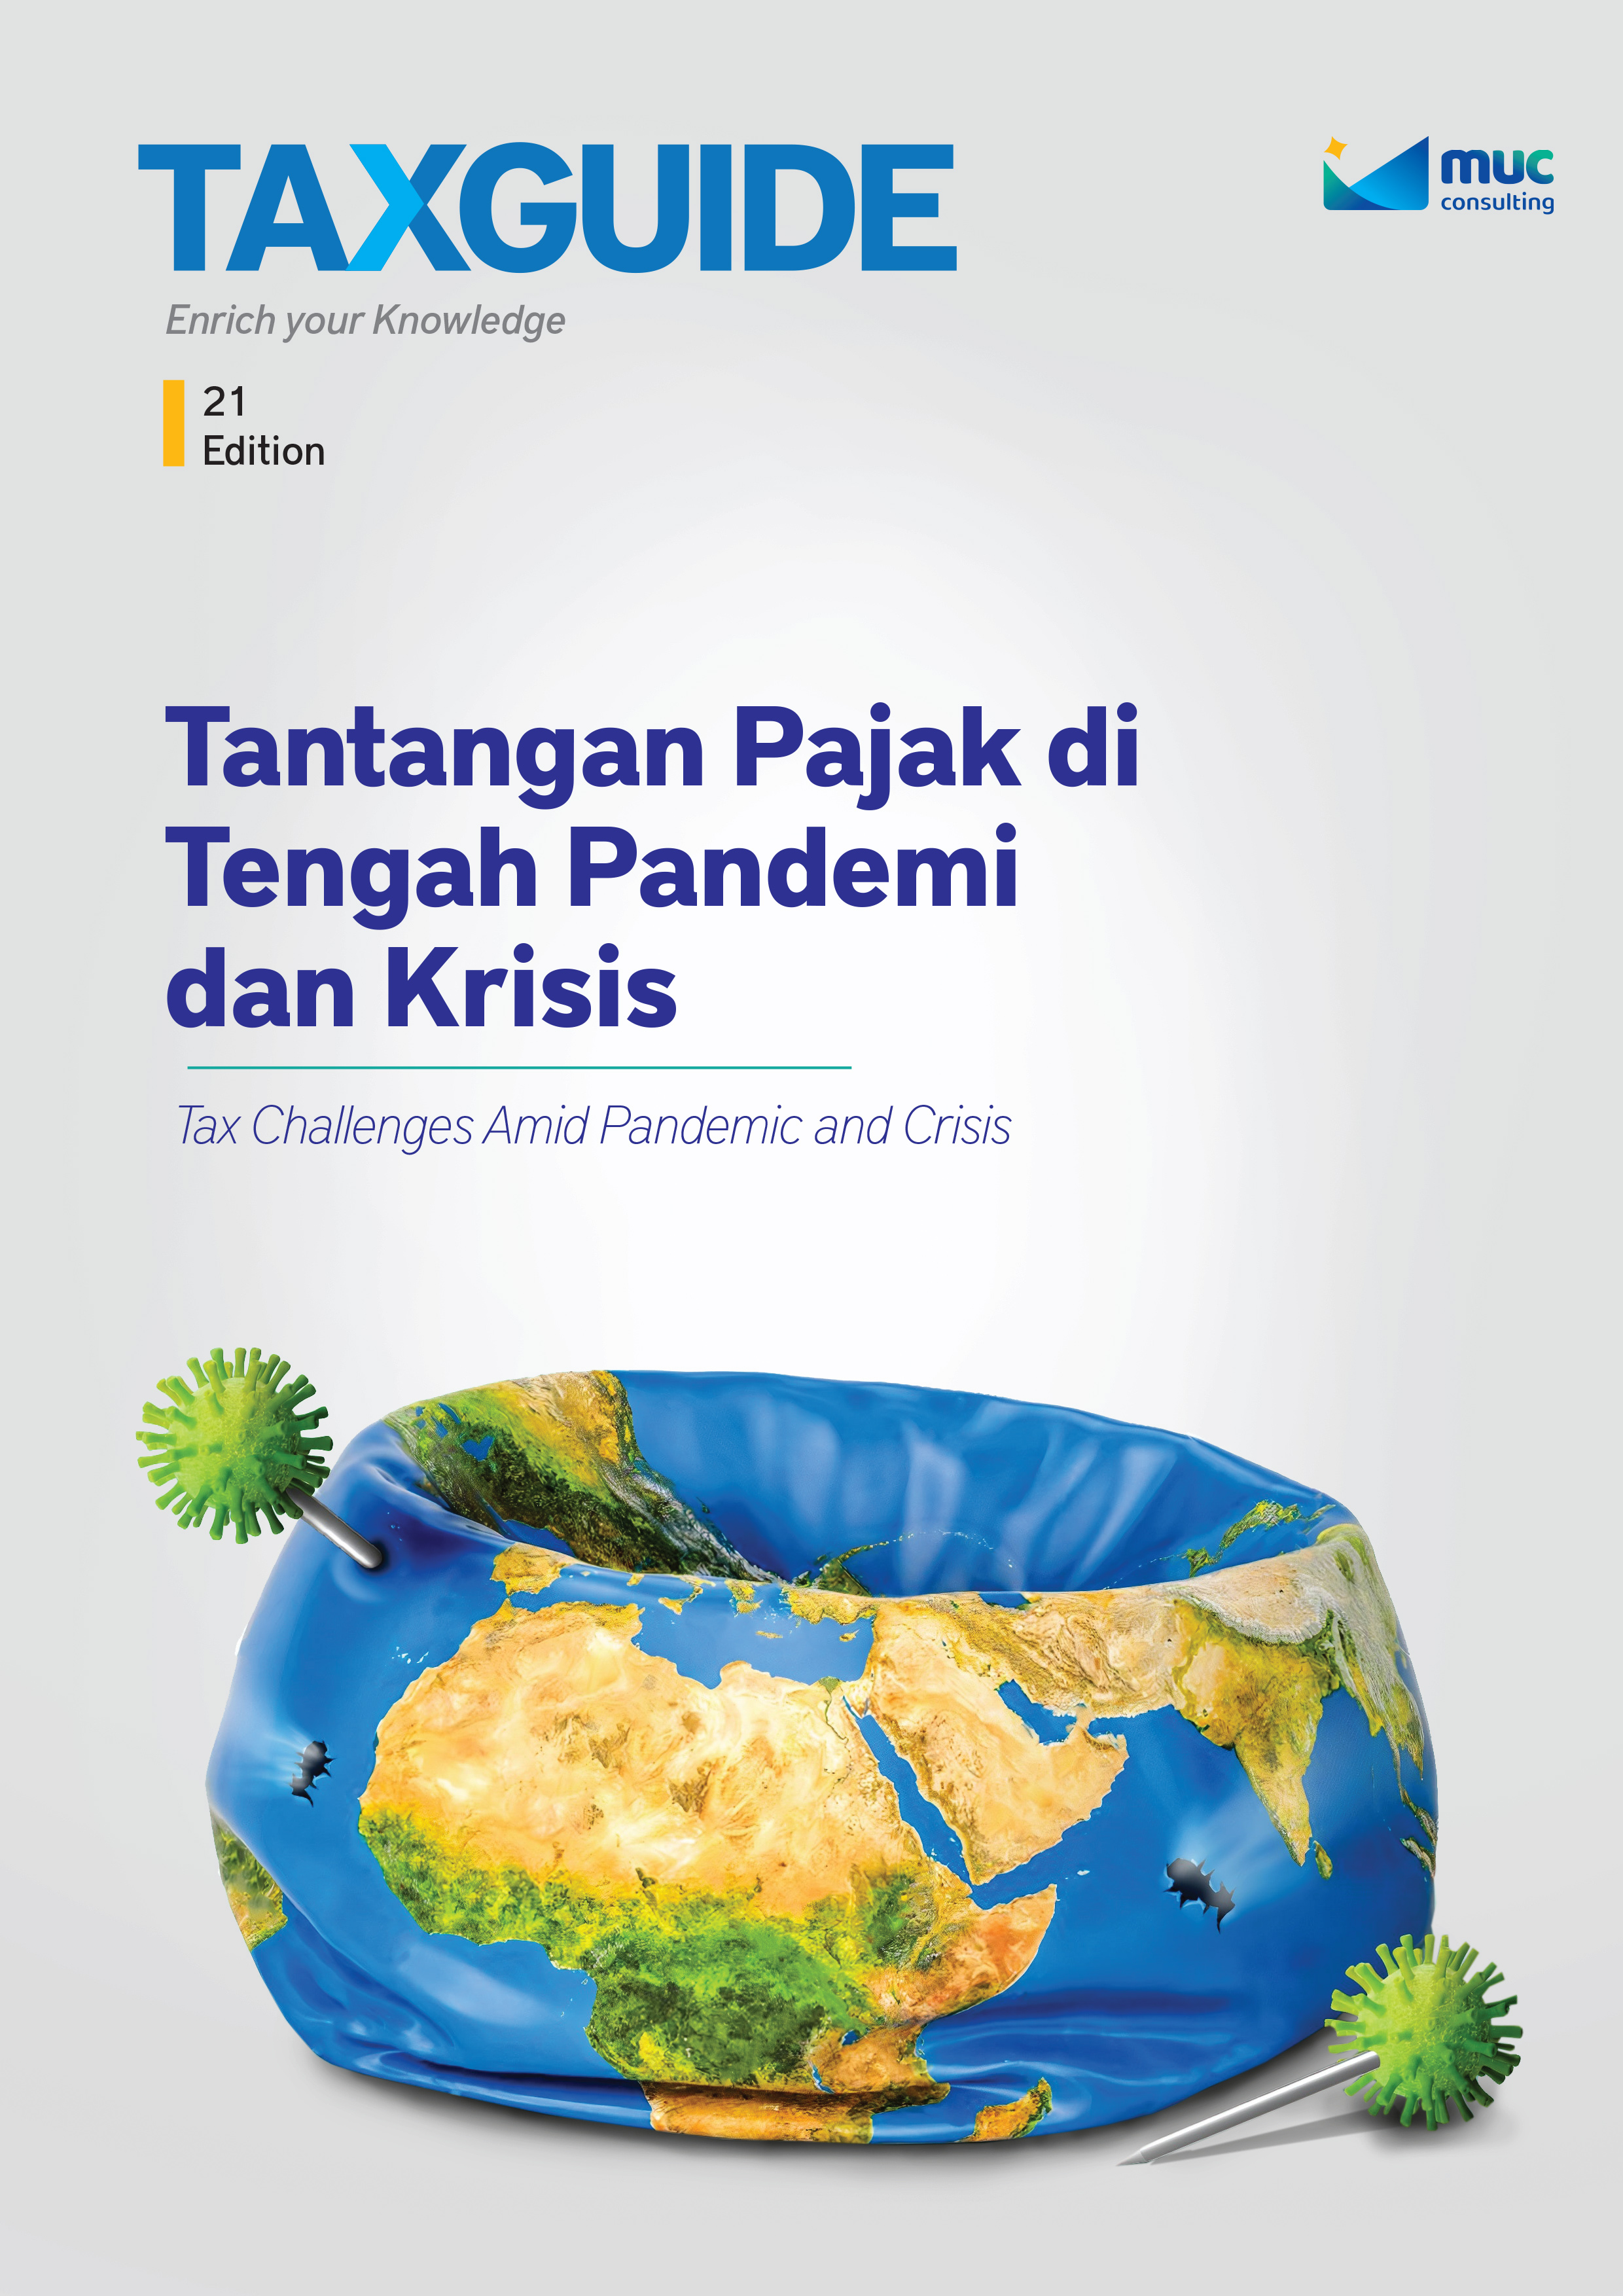 Tax Challenges Amid Pandemic and Crisis